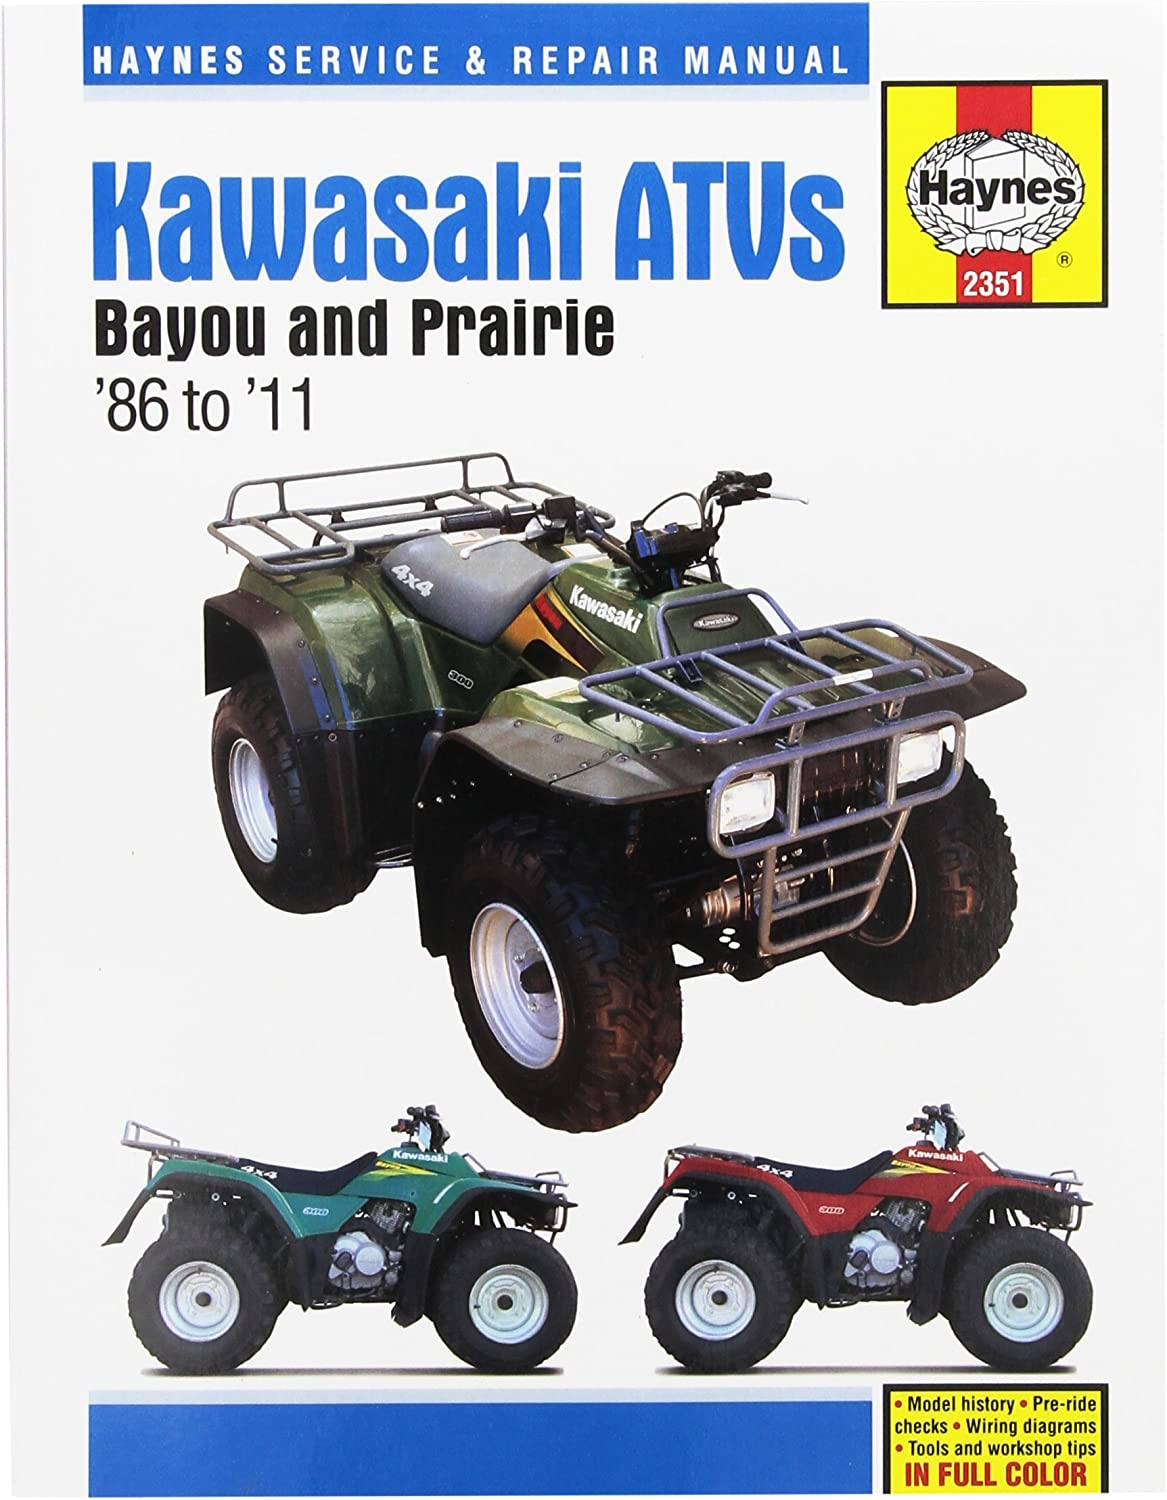 Kawasaki Bayou & Prairie ATV Haynes Repair Manual (1986 - 2011) on honda xr200 wiring diagram, harley davidson wiring diagram, kawasaki lakota motor, kawasaki lakota valves, kawasaki lakota wheels, kawasaki lakota clutch, kawasaki lakota exhaust, kawasaki lakota headlight,